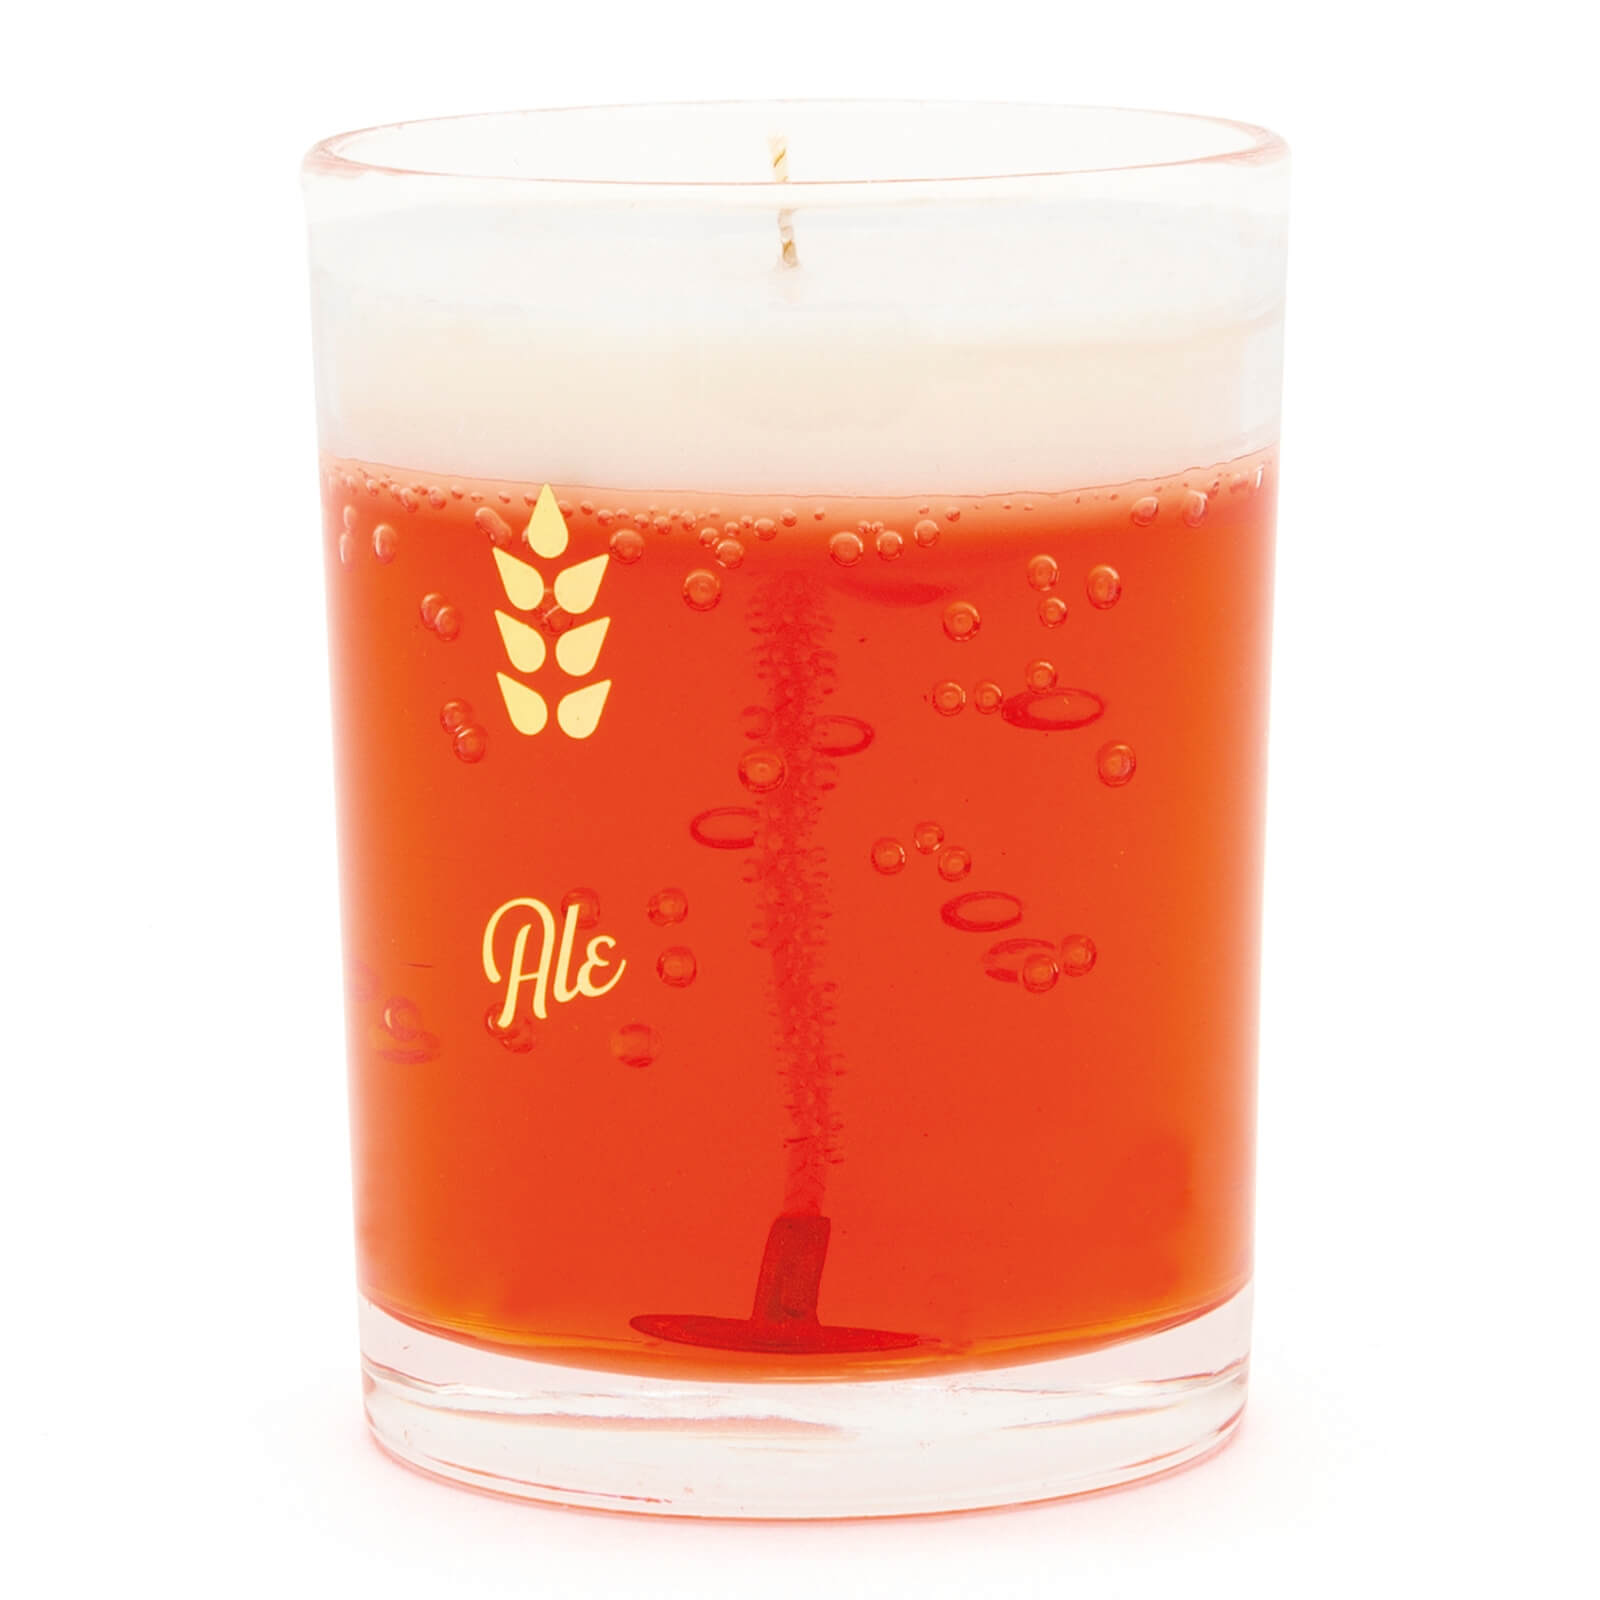 Image of Beer Candle - Ale